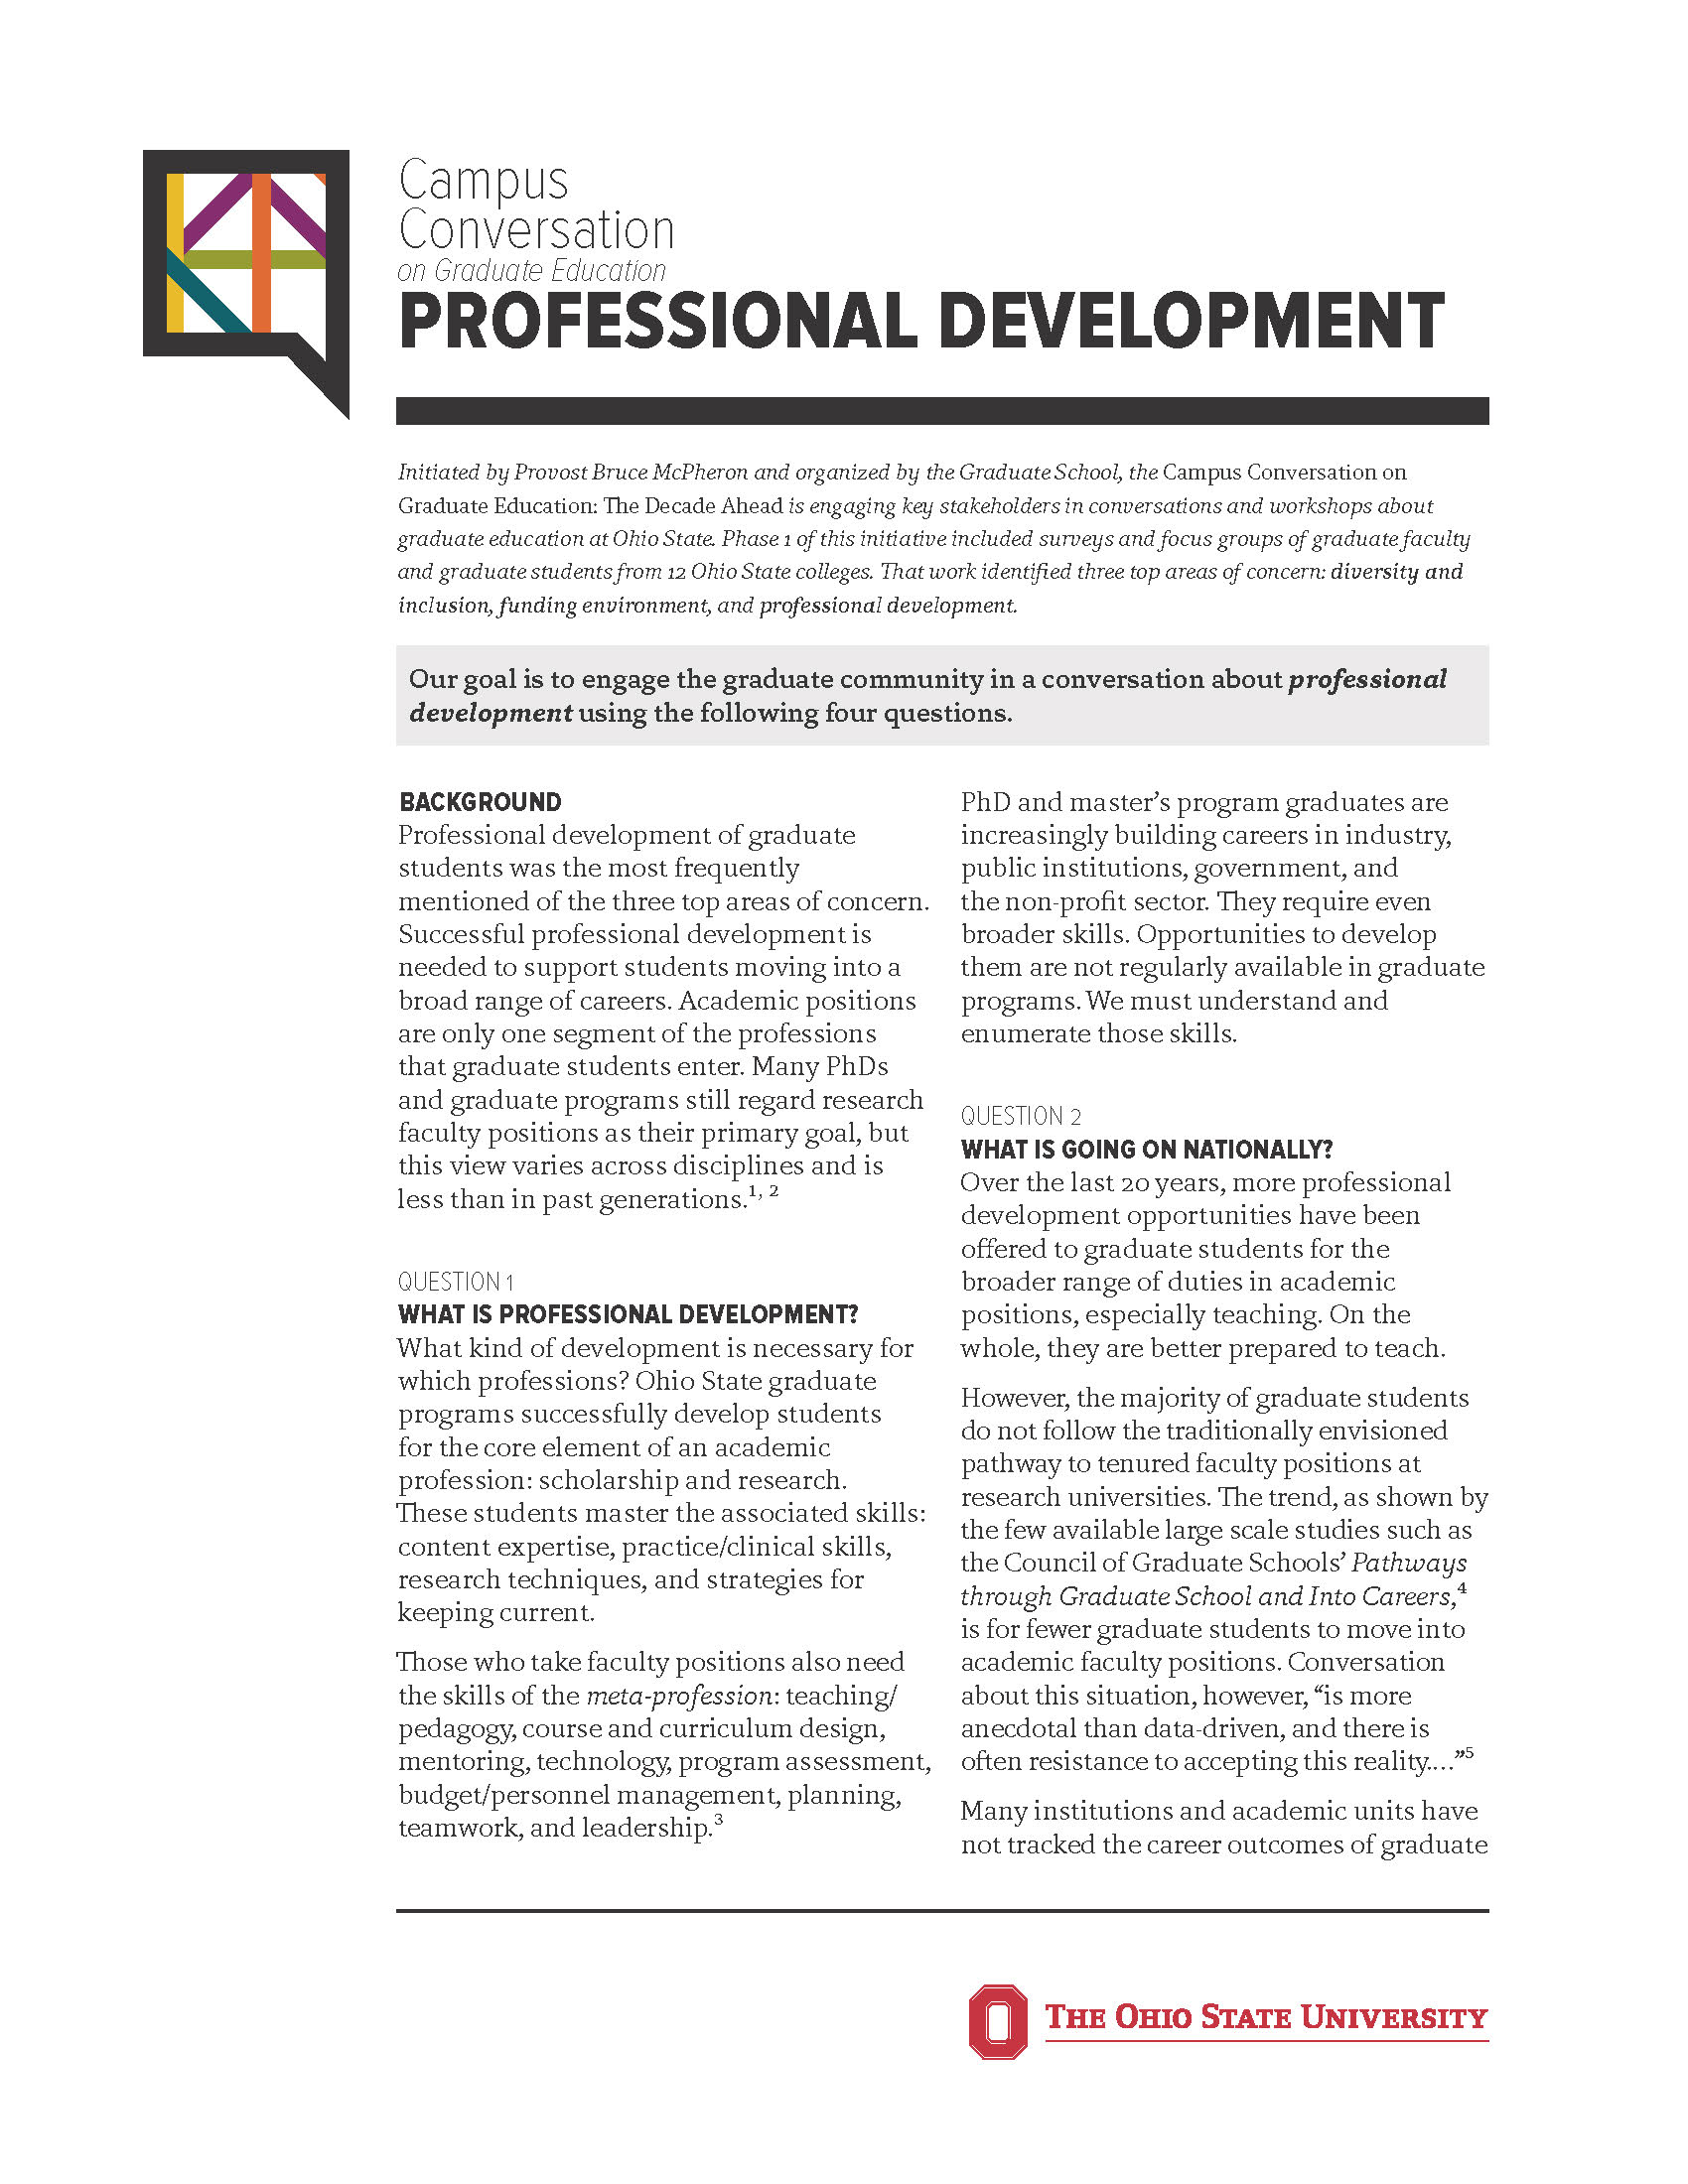 Professional development one-pager